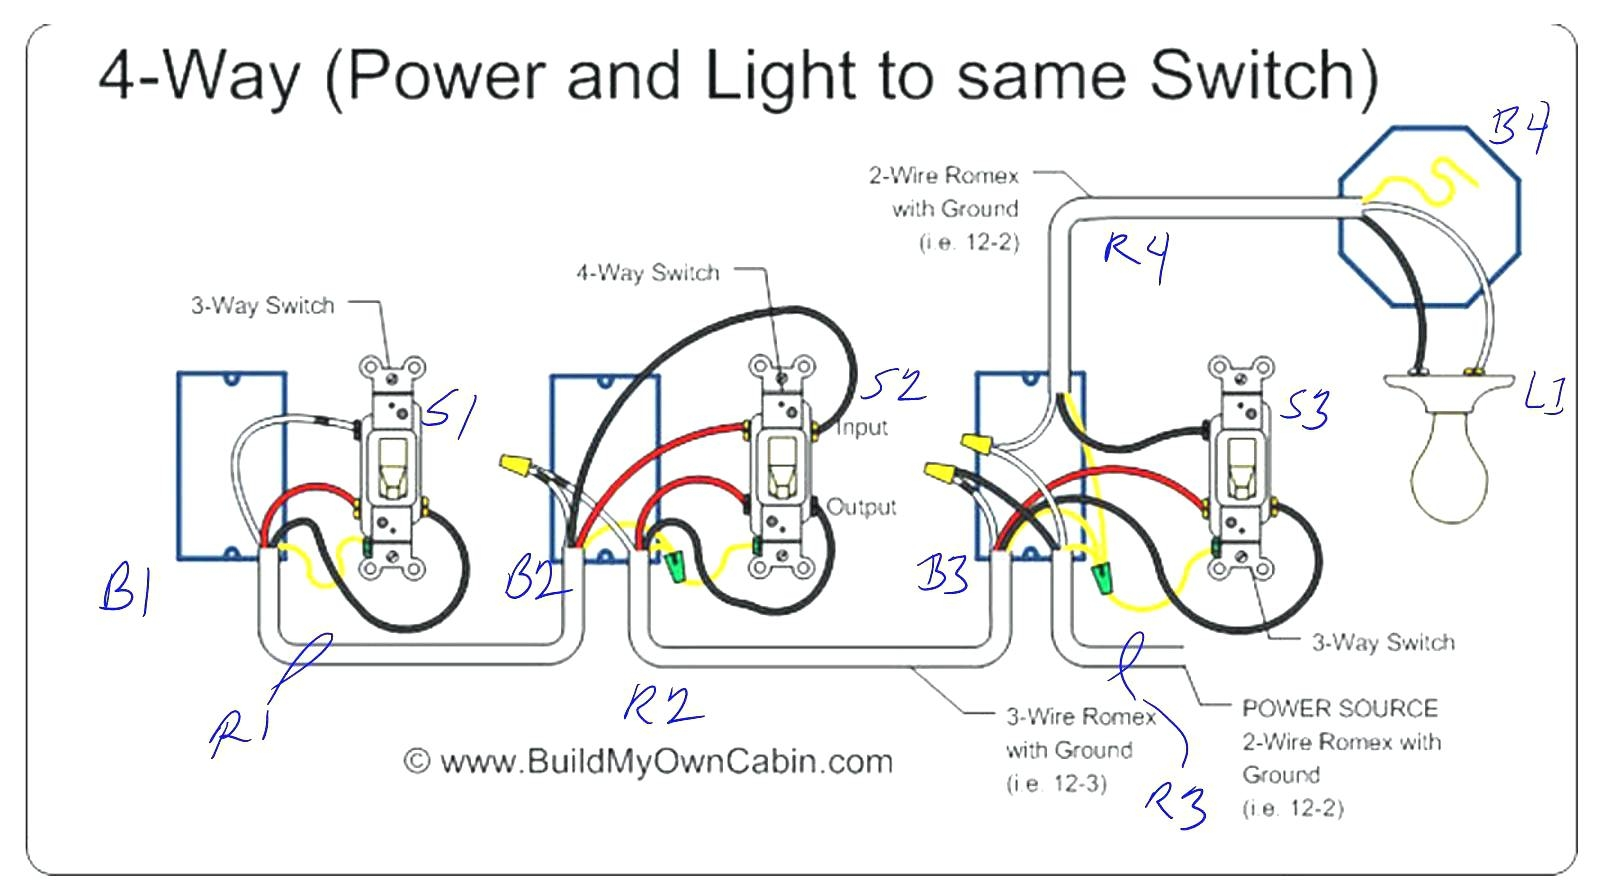 3 wire pressure transducer wiring diagram Download-3 Wire Pressure Transducer Wiring Diagram Inspirational Four Way Dimmer Switch Wiring Diagram 2 Uk Maestro 16-f